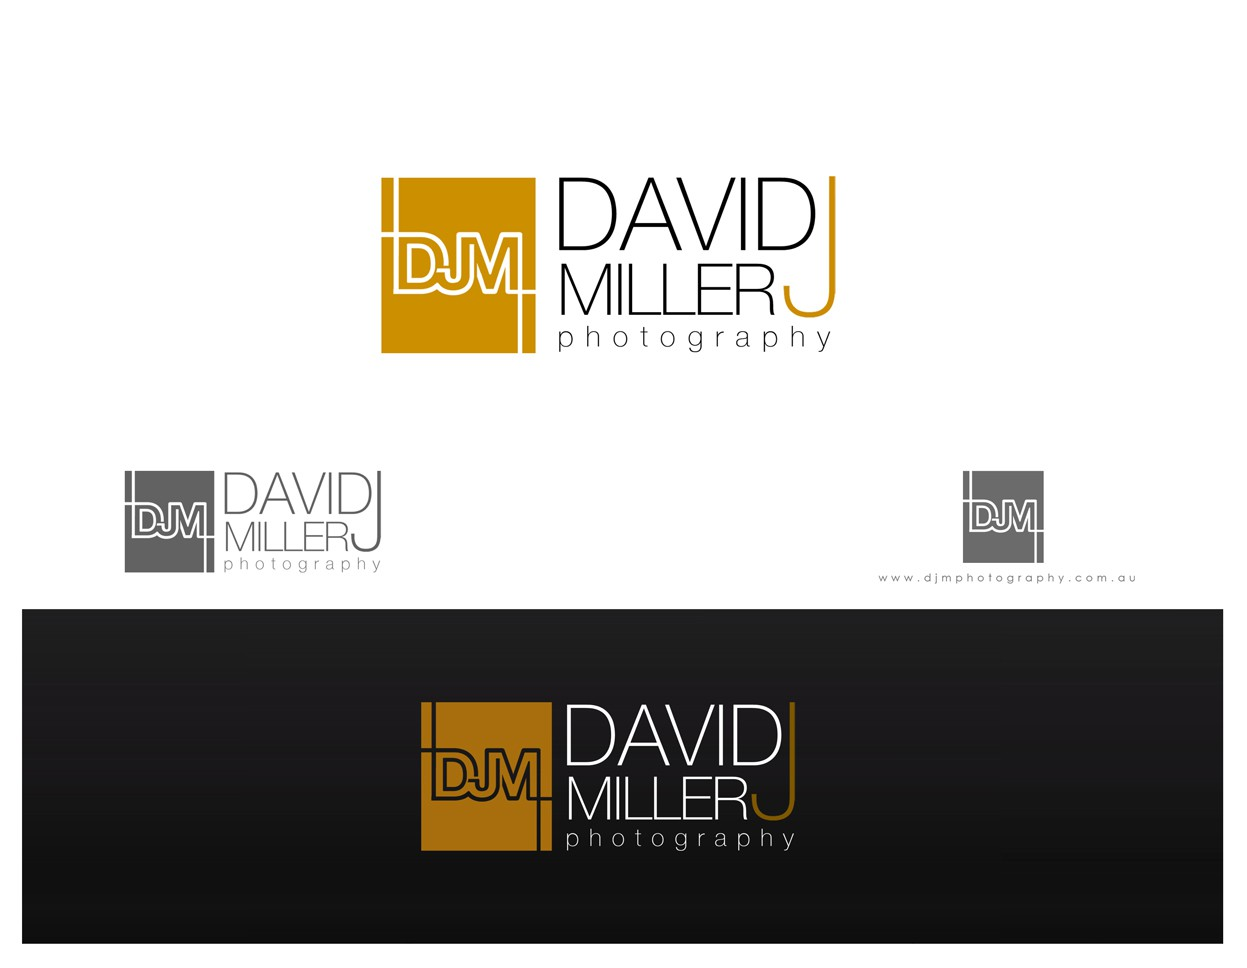 David James Miller Photography needs a new logo